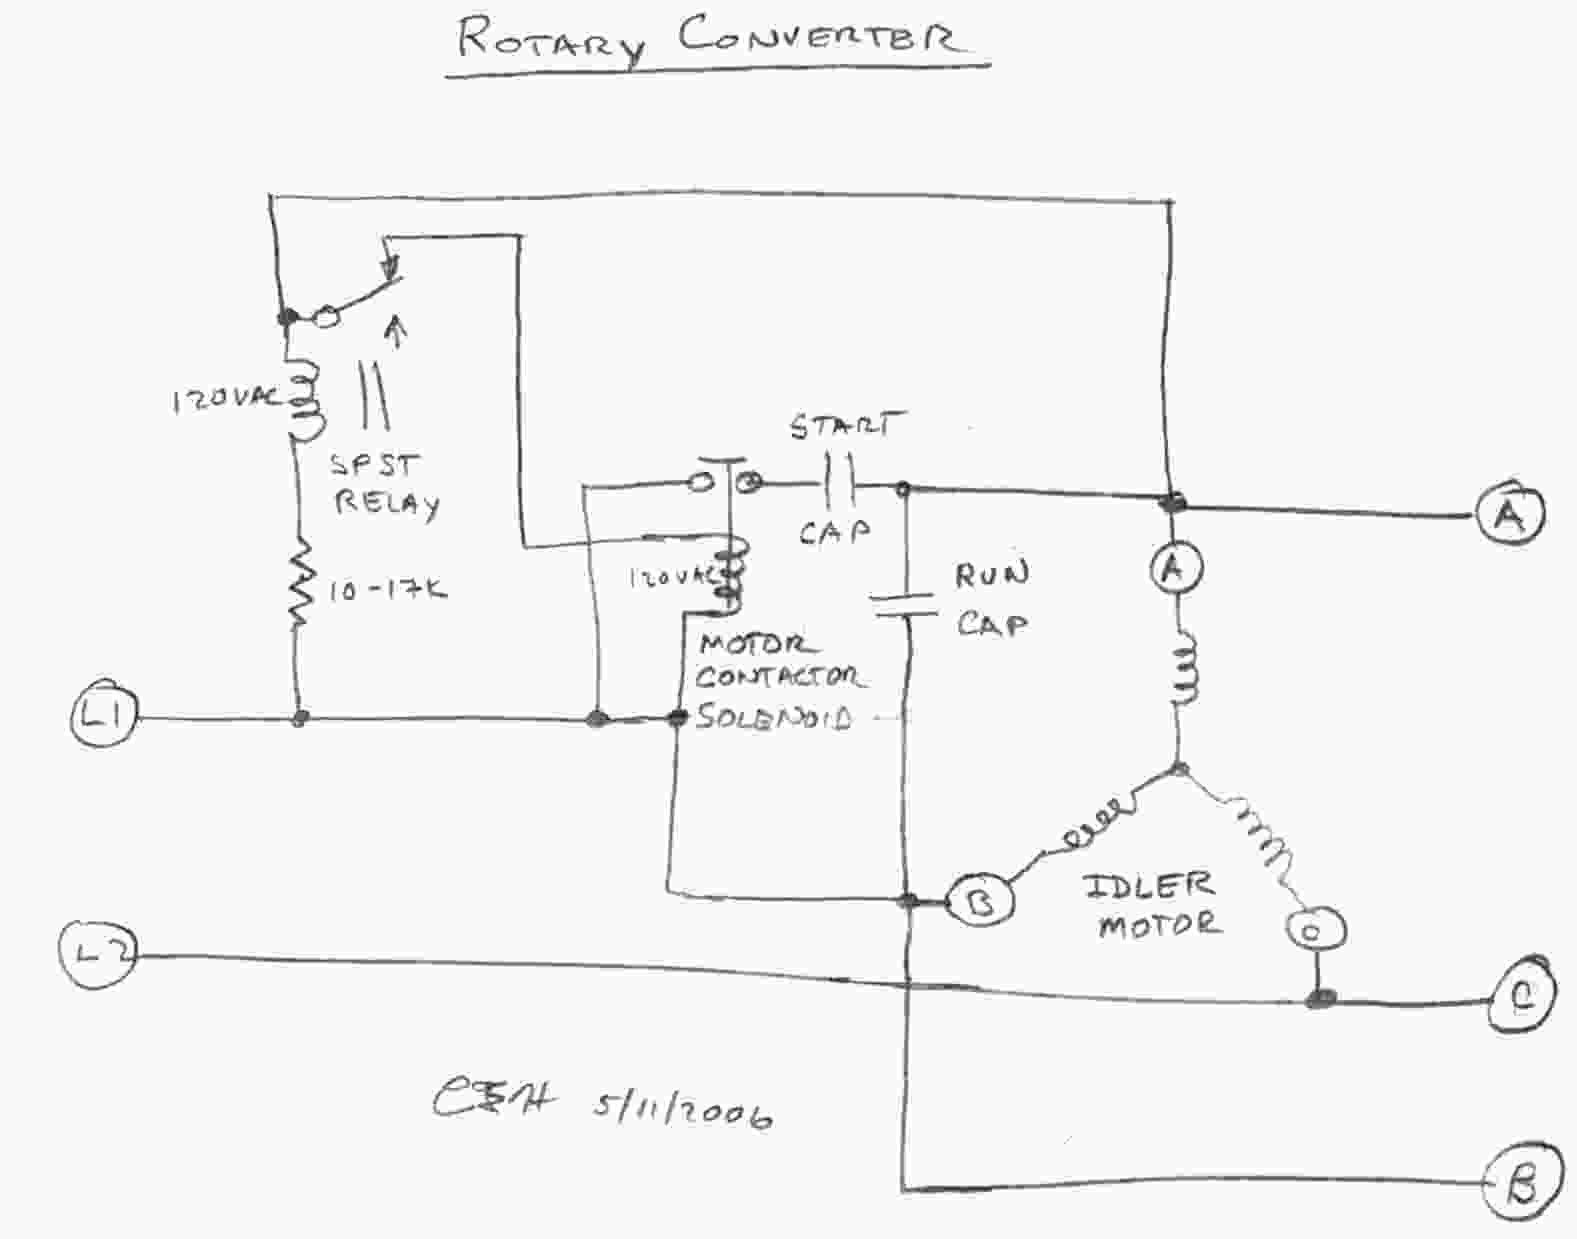 small resolution of 3 phase generator wiring diagram lima wiring diagram sch 3 phase generator wiring diagram lima wiring